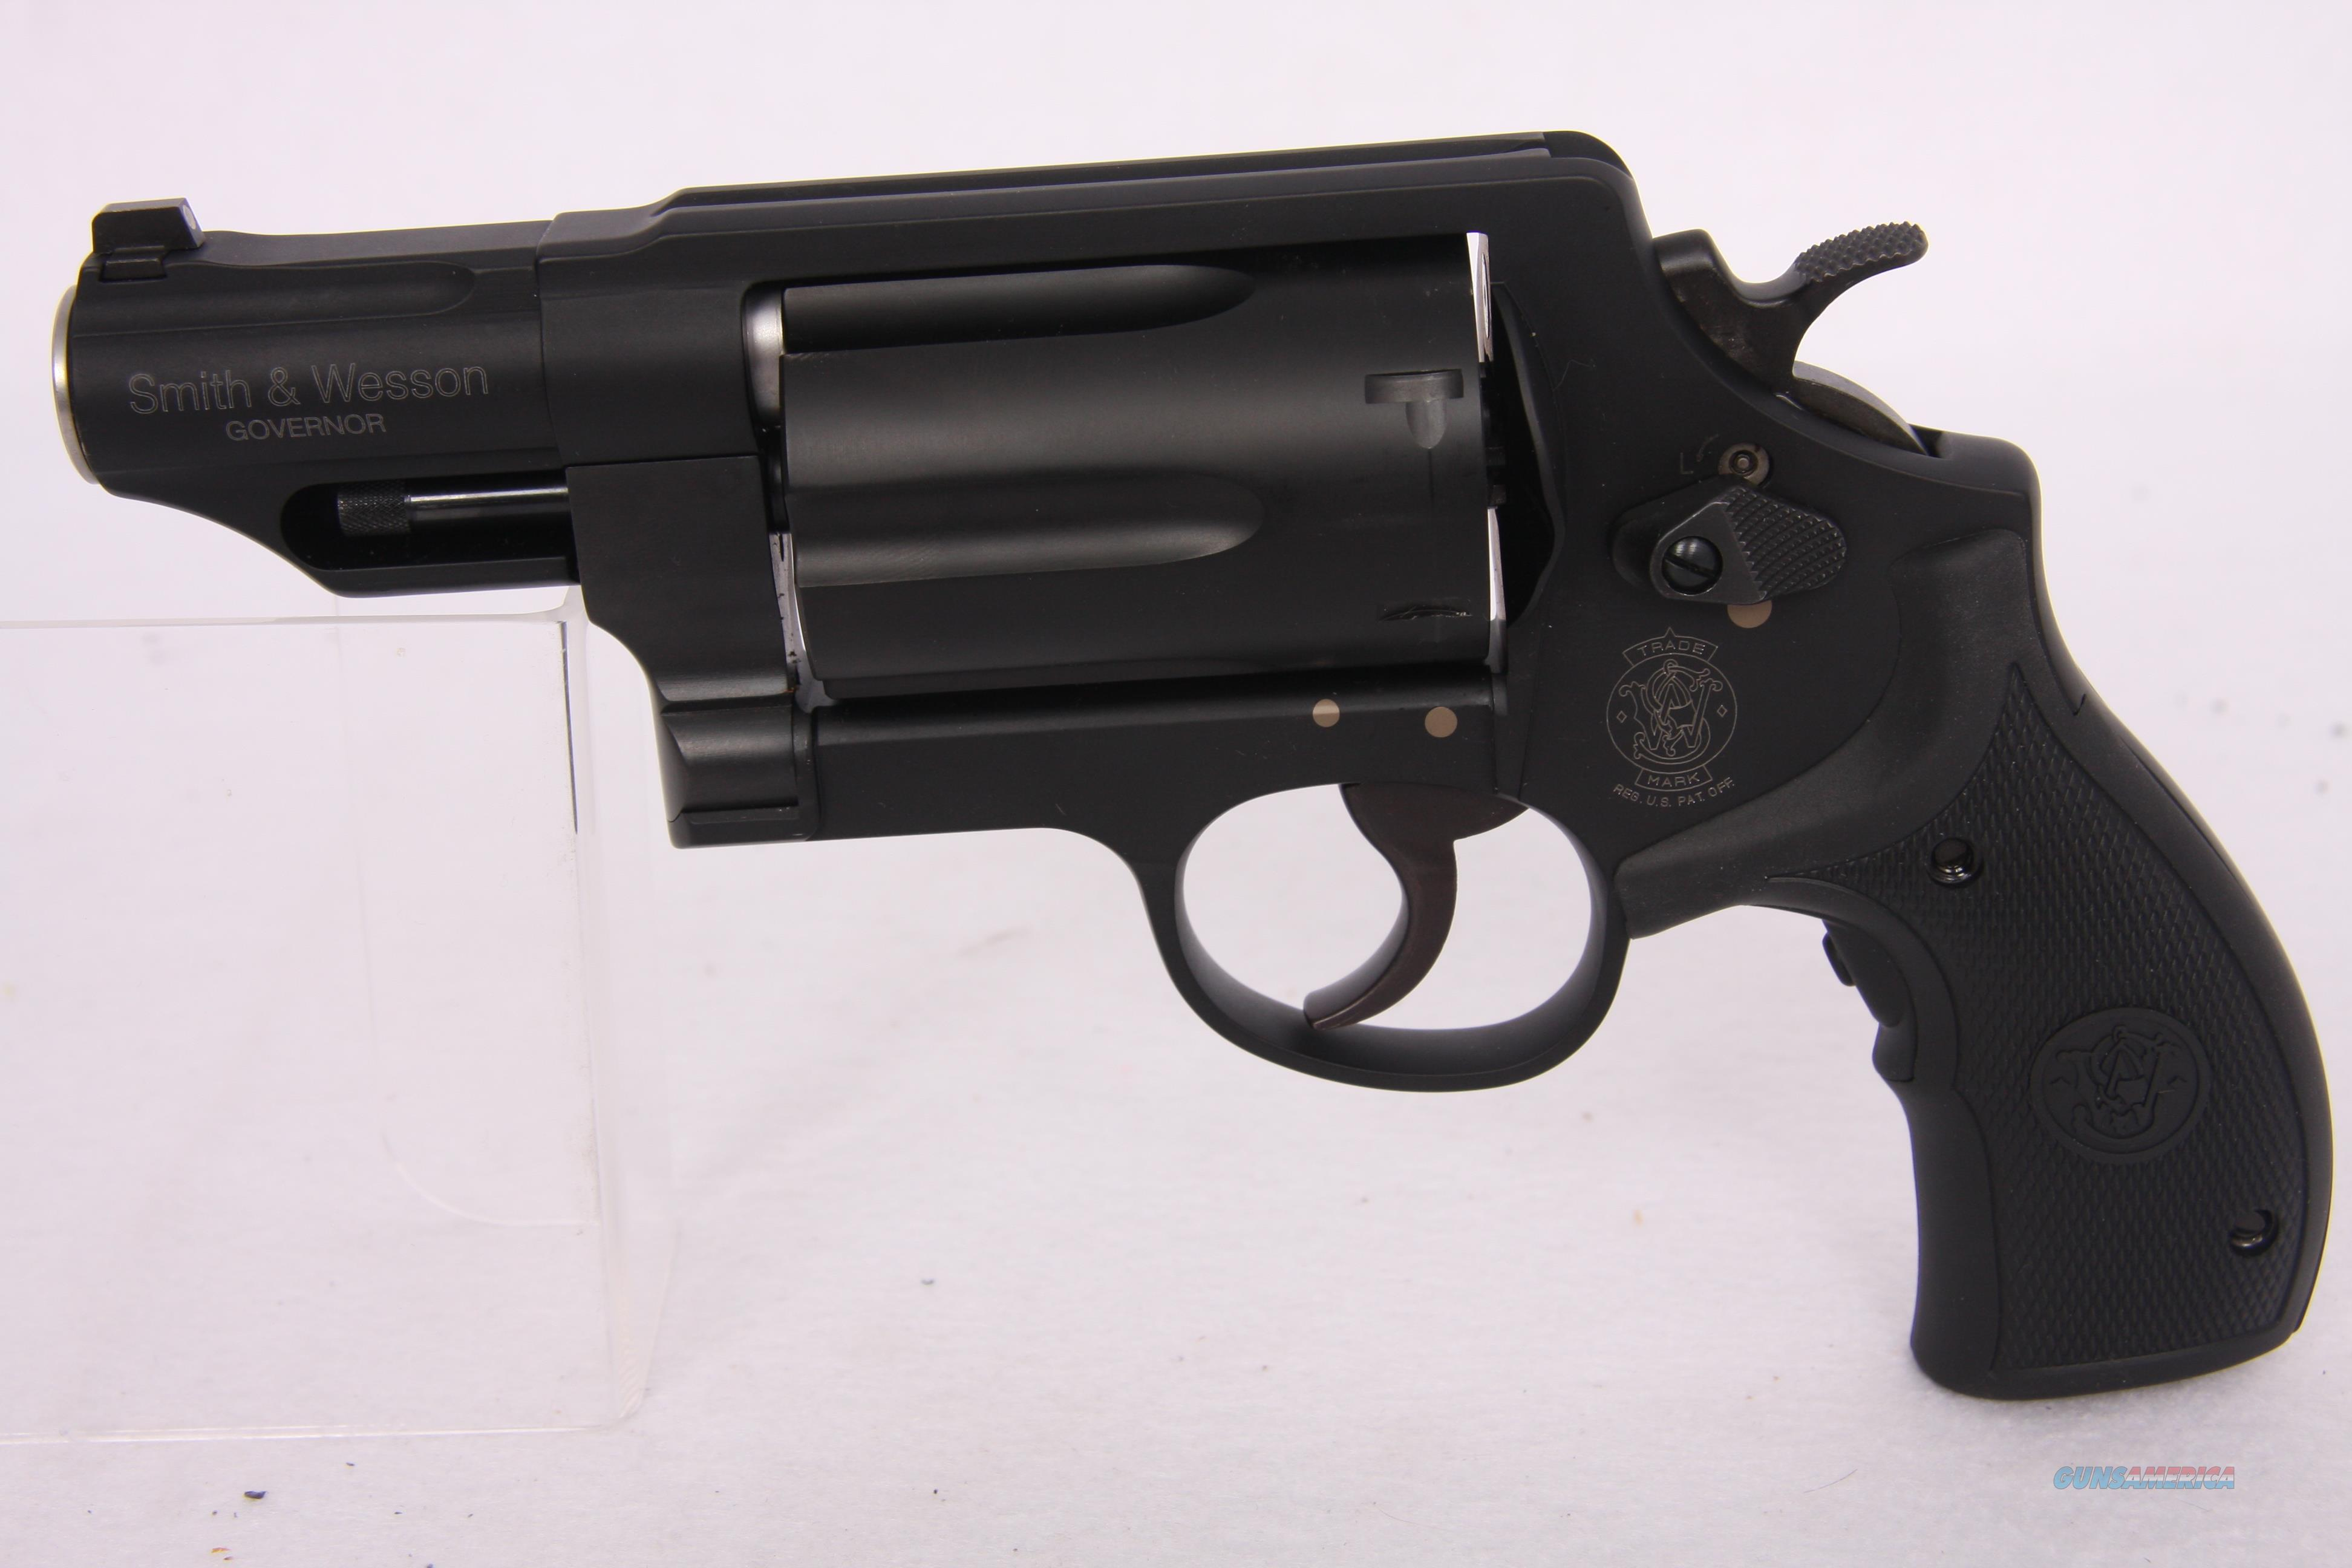 S&W Governor .45ACP/.45LC/410 with Crimson Trace Grips  Guns > Pistols > Smith & Wesson Revolvers > Full Frame Revolver